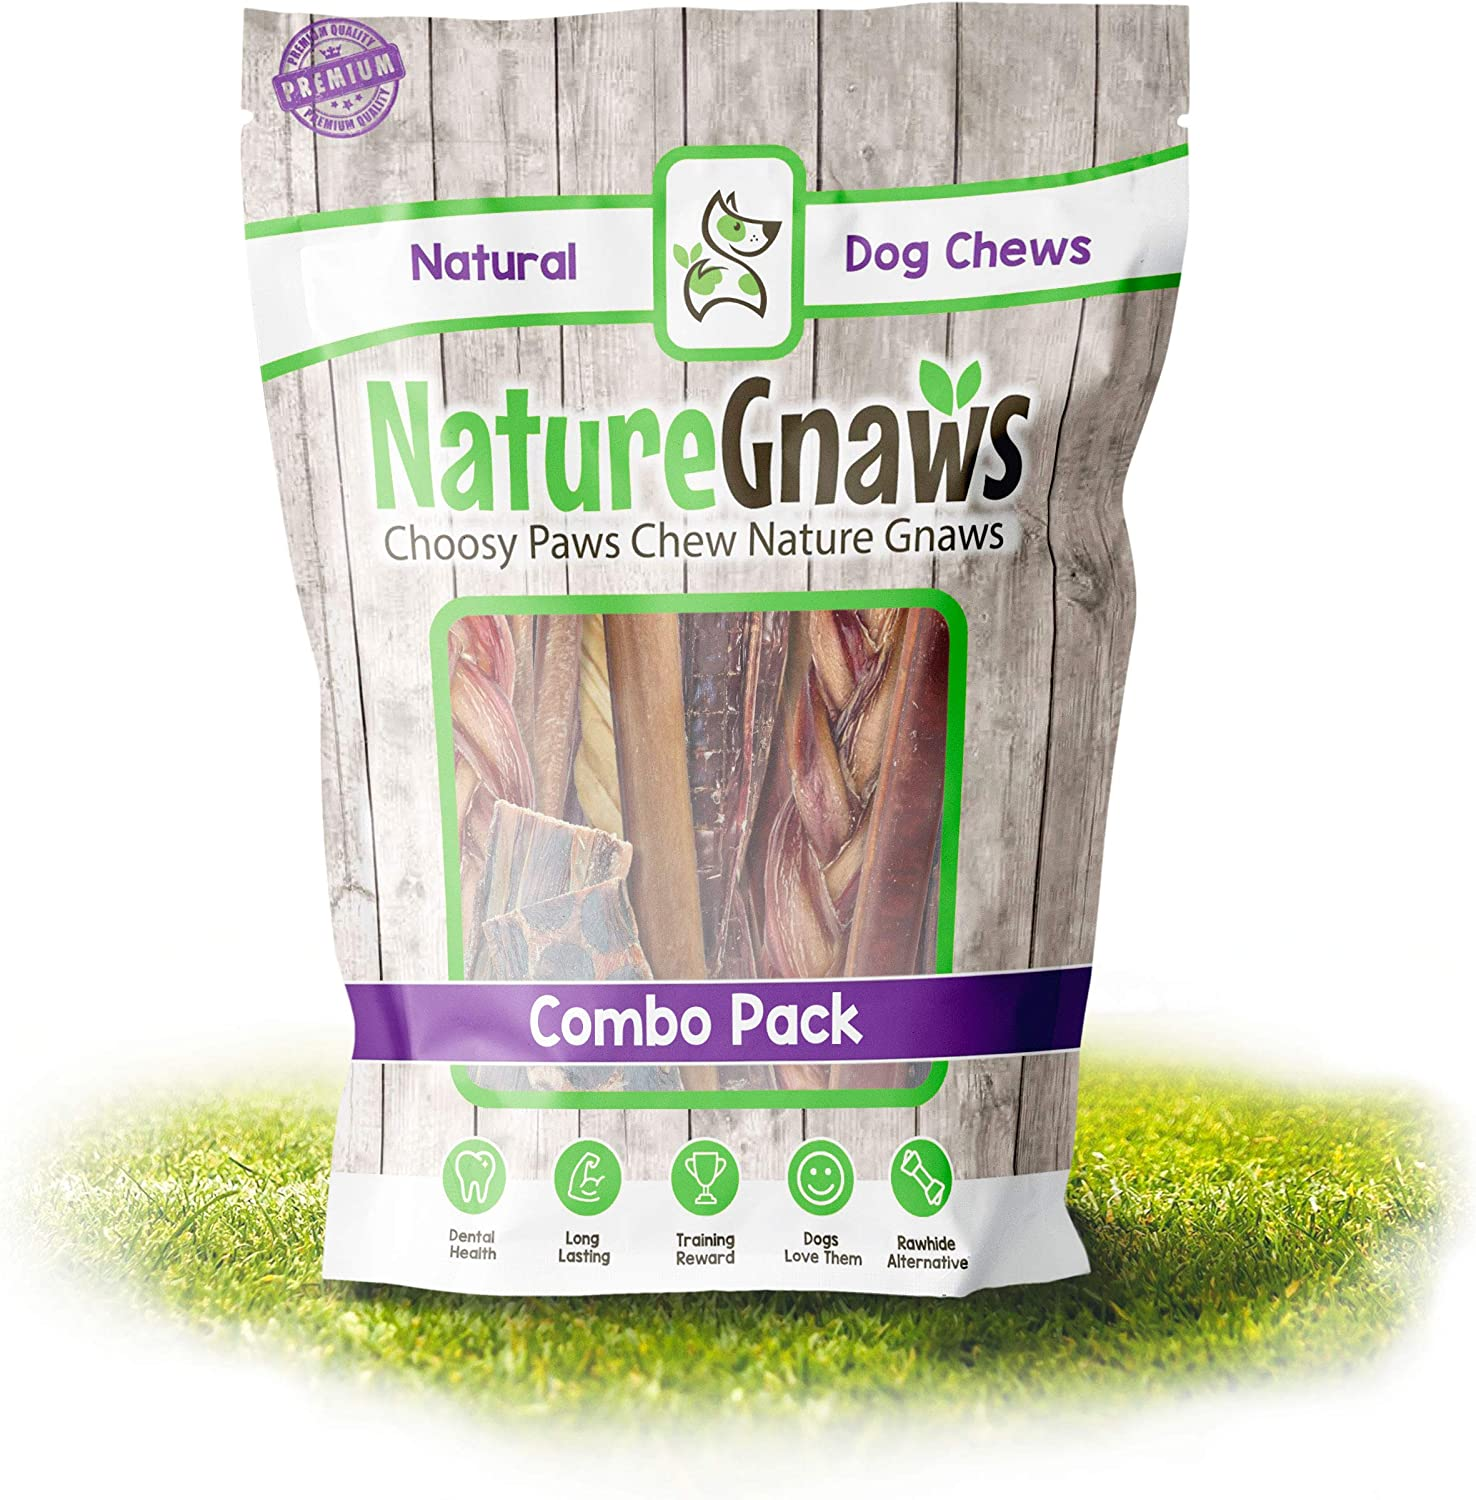 Nature Gnaws Variety Pack - 100% Natural Dog Chew Treats - Combo Pack of Single Ingredient Bully Sticks, Tendons and Jerky Chews for Dogs